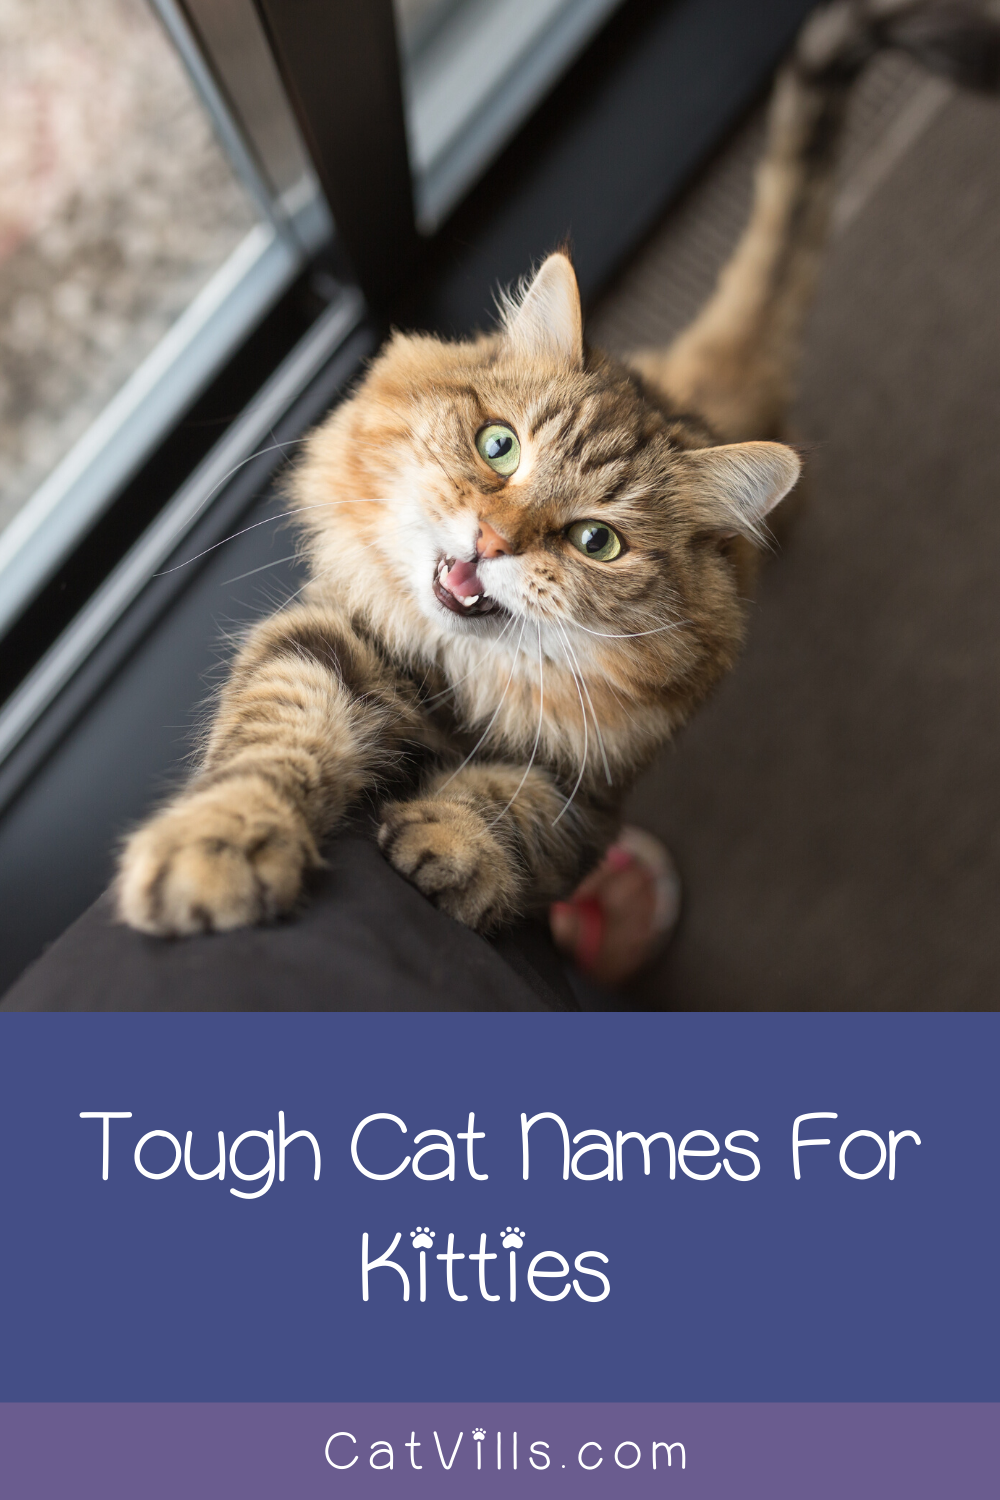 100 Totally Badass Cat Names For Tough Kitties Catvills In 2020 Badass Cat Names Cat Names Cats